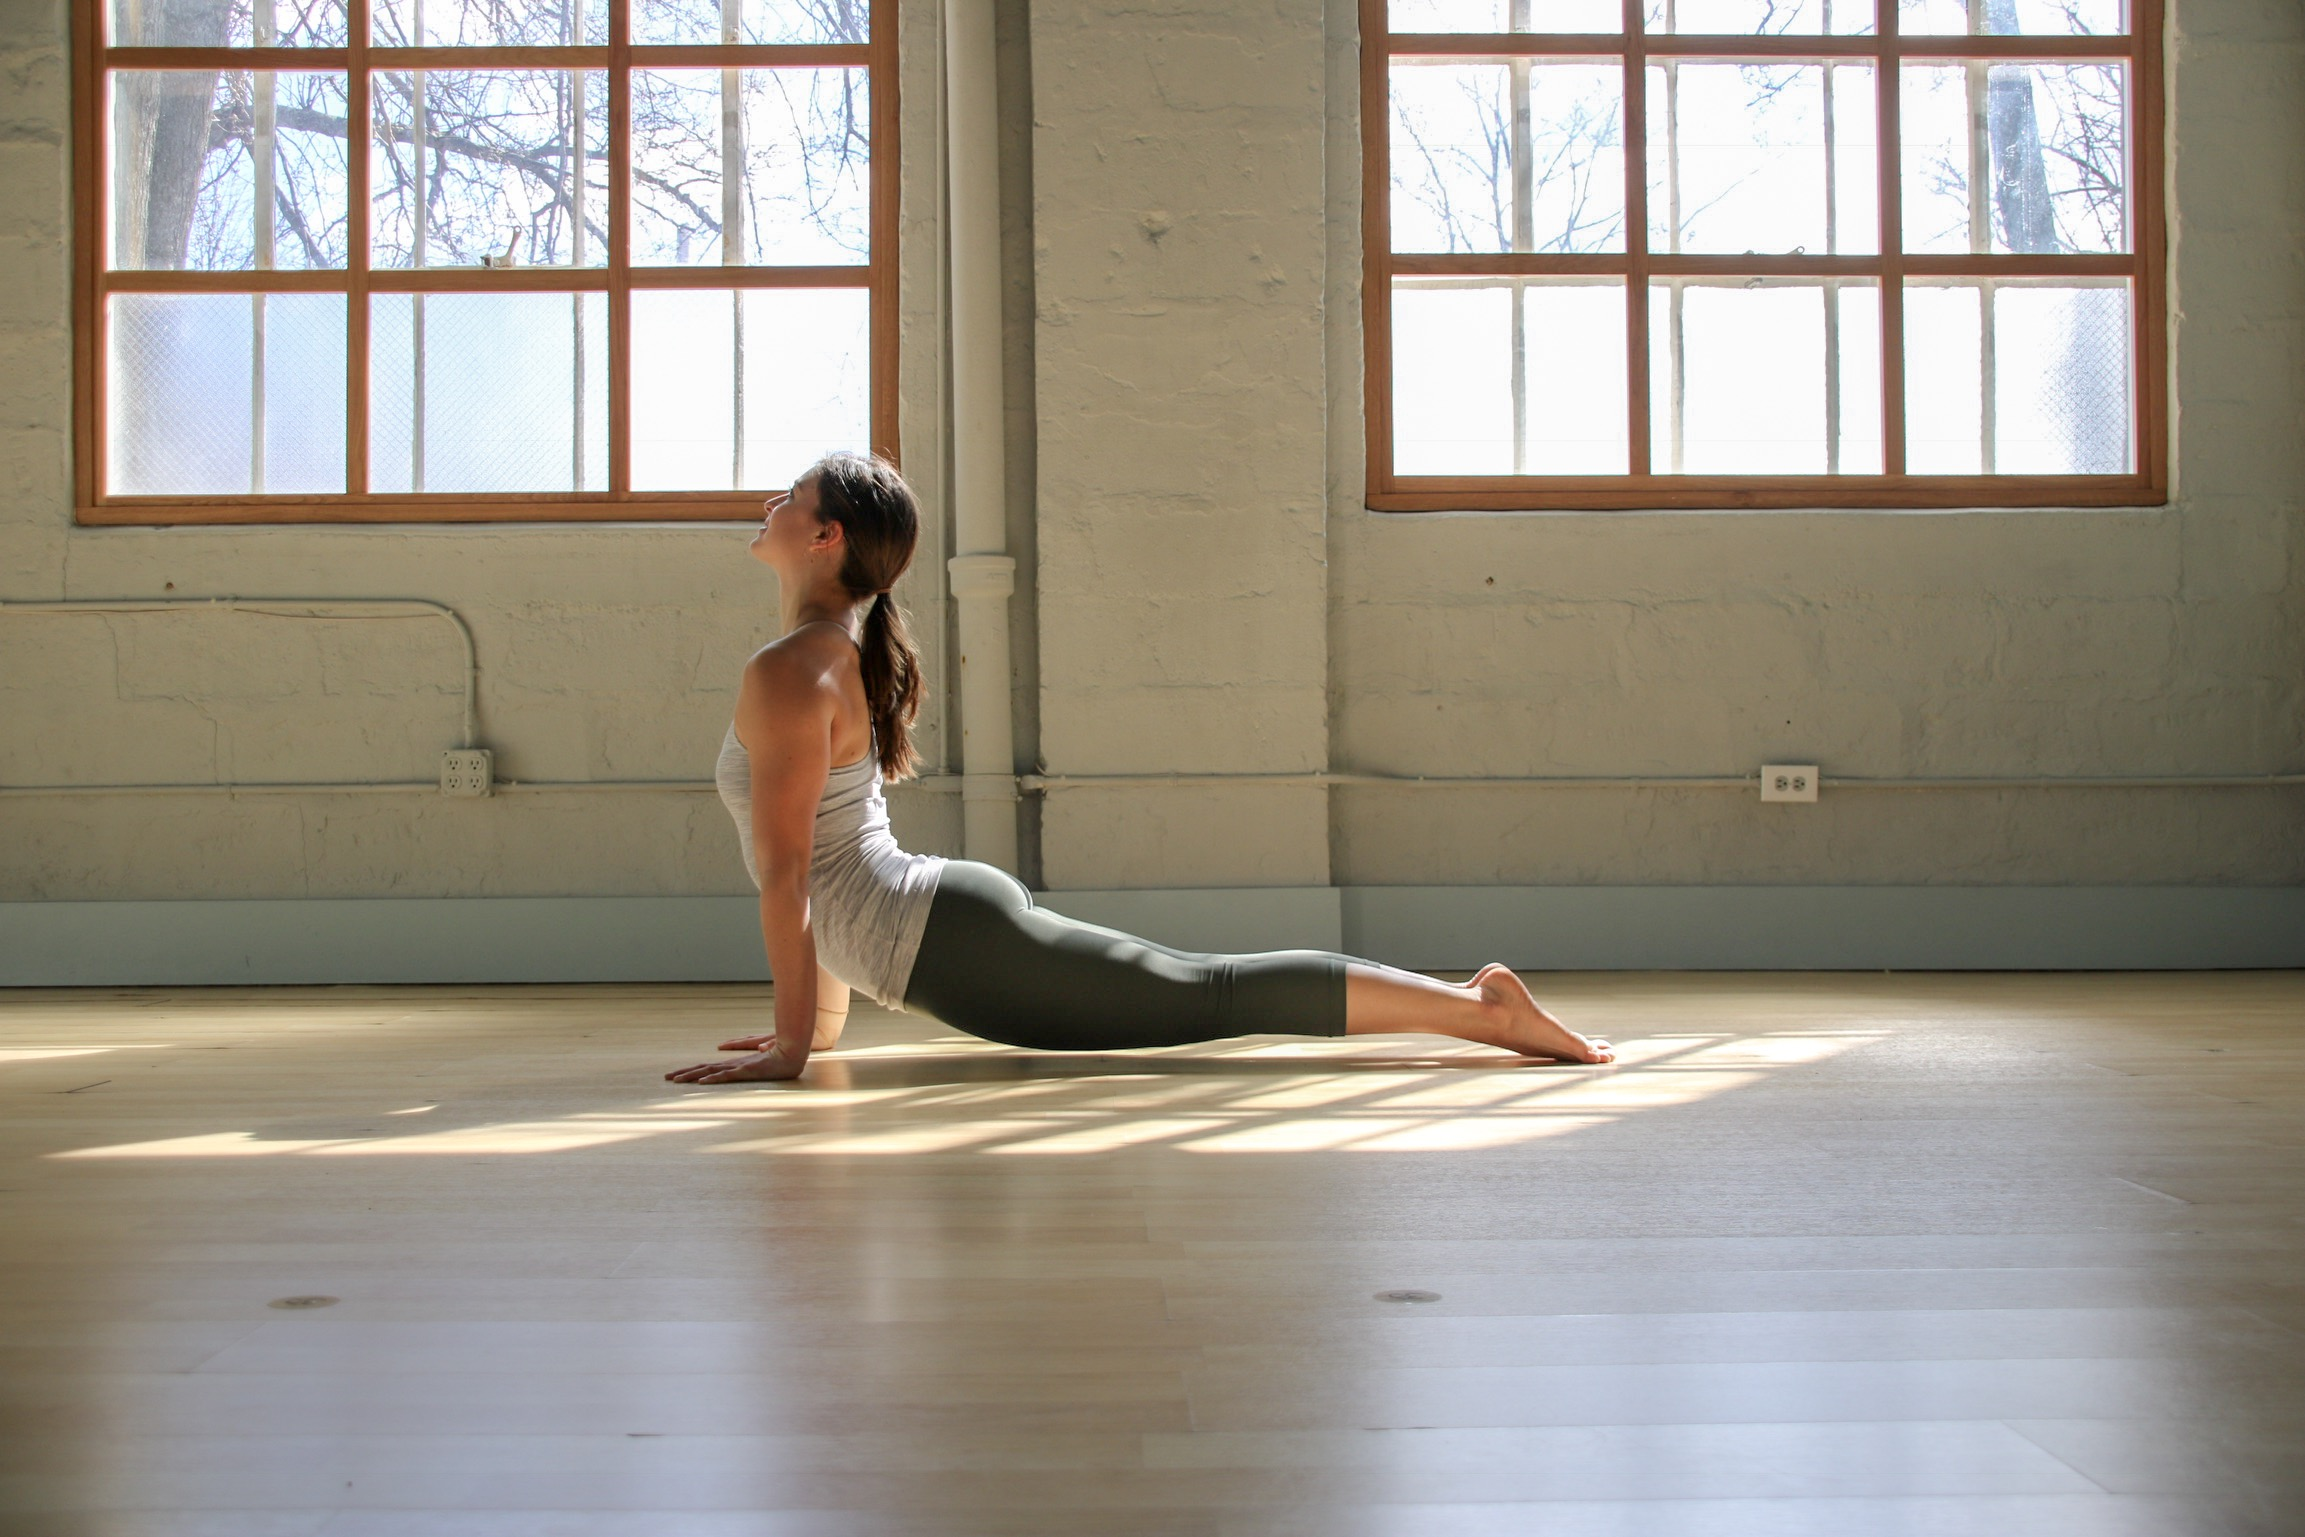 How to practice: From downward dog, shift your hips forward to high plank. Keeping the elbows straight, lay the tops of the feet flat, let hips sink down toward the floor. Keep your chest broad and lifted, drawing collar bones wide, draw belly button to spine and keep the abdominals engaged.